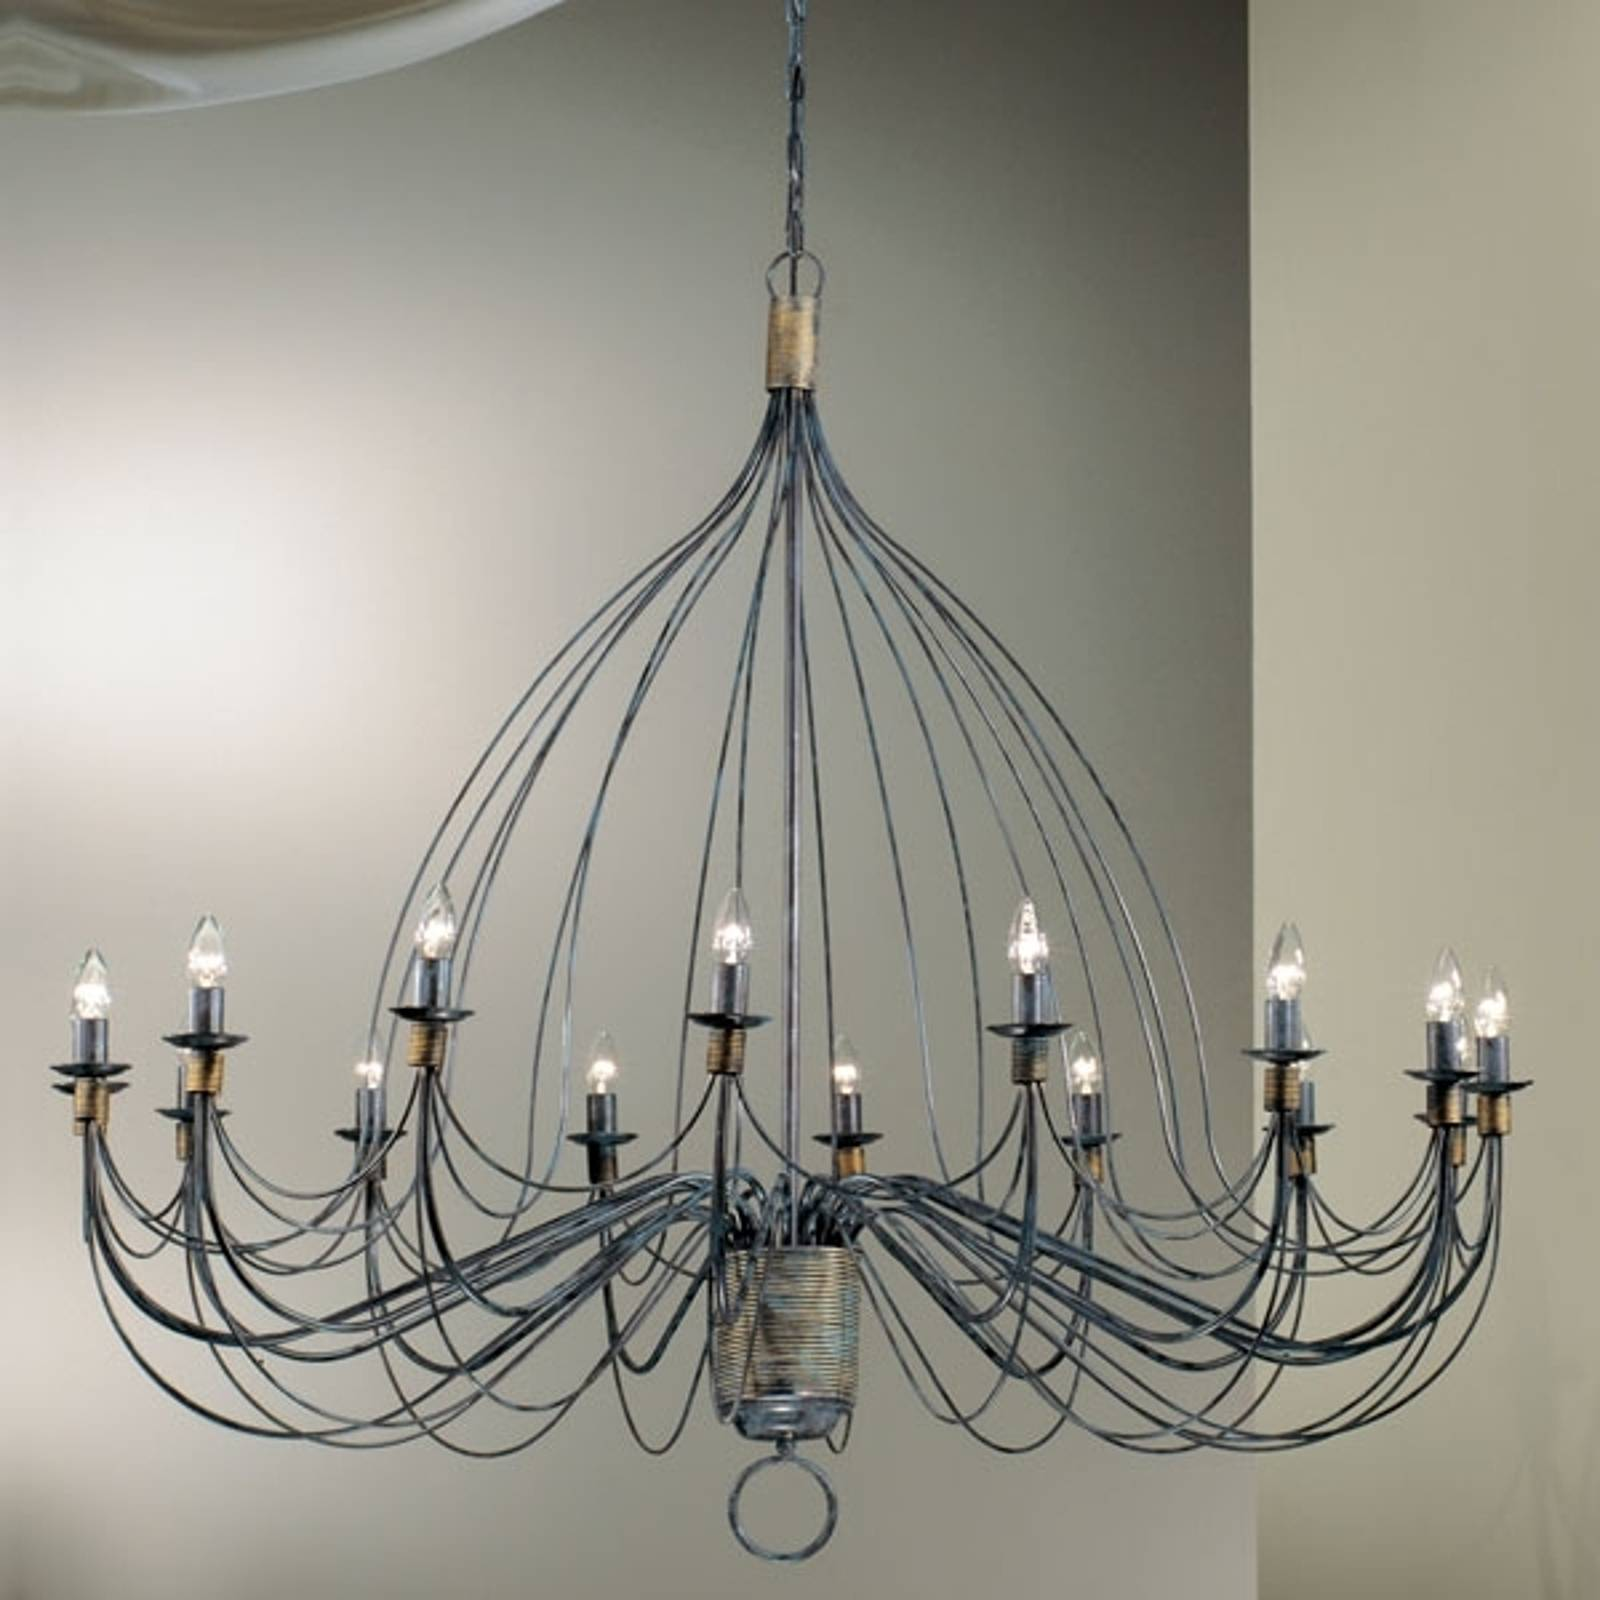 Chandelier FILO, 140 cm, sixteen bulbs from Kögl